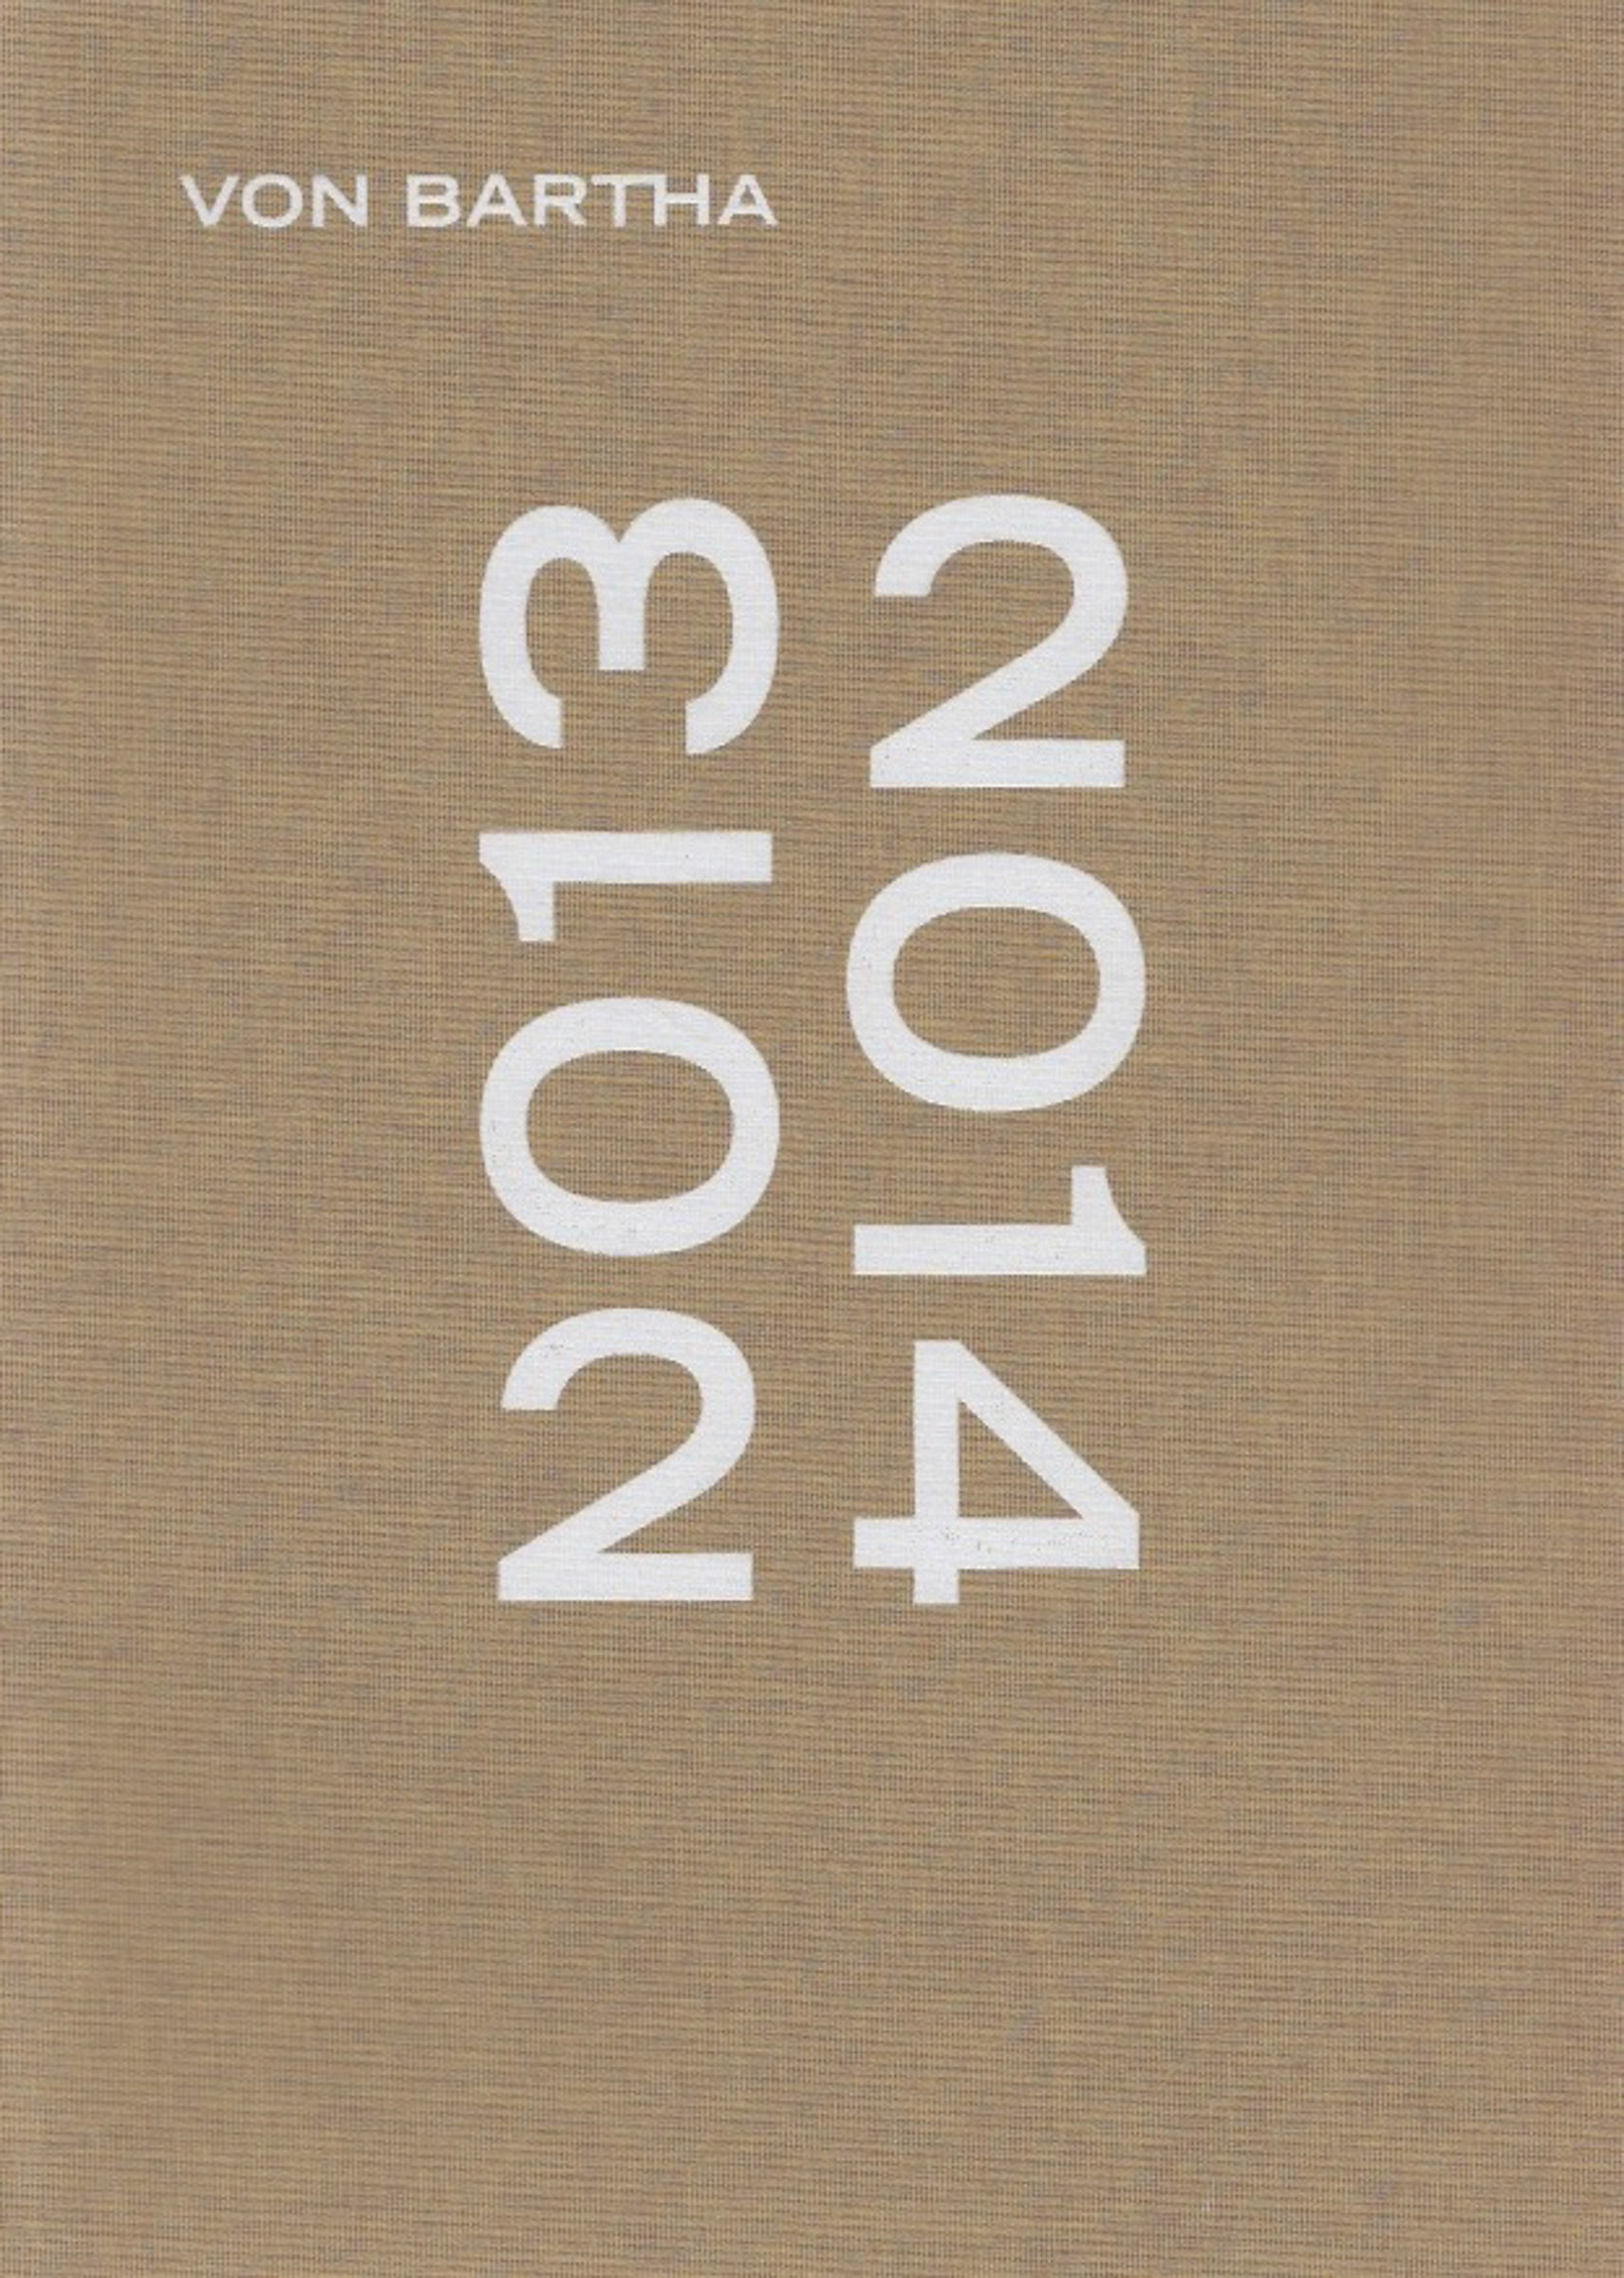 Publication by Yearbook 2013/2014